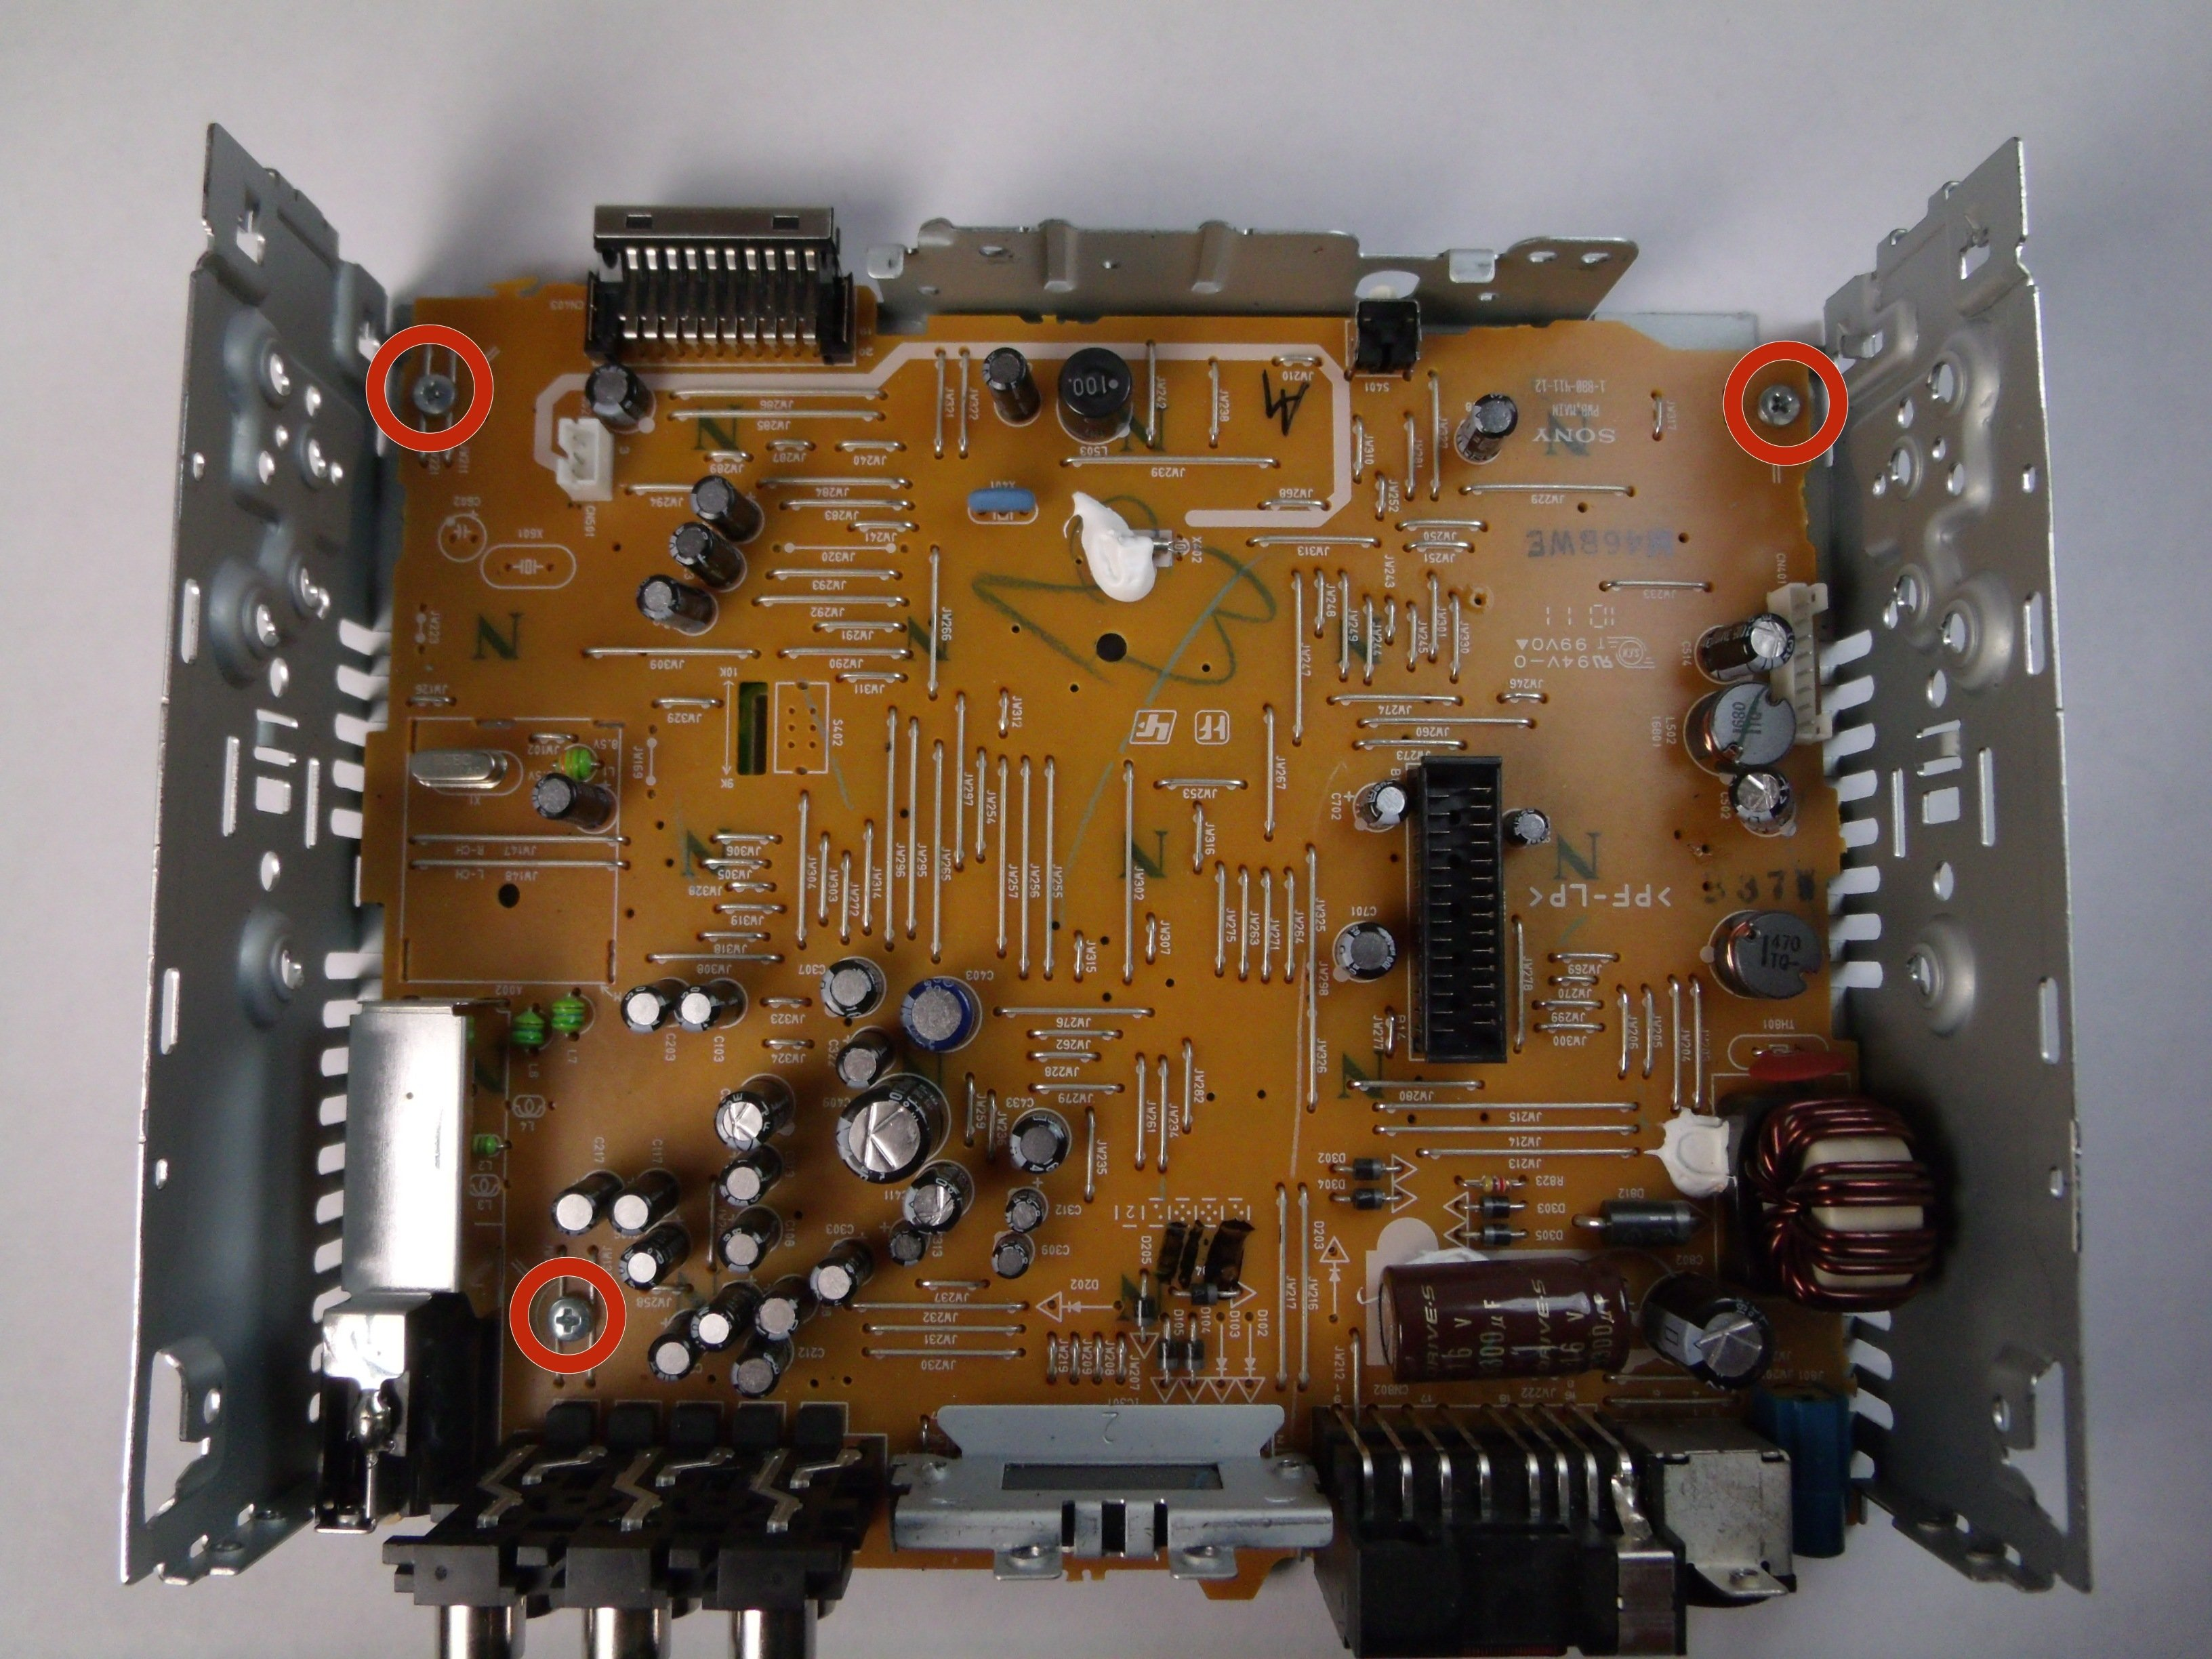 Sony Cdx-gt540ui Motherboard Replacement